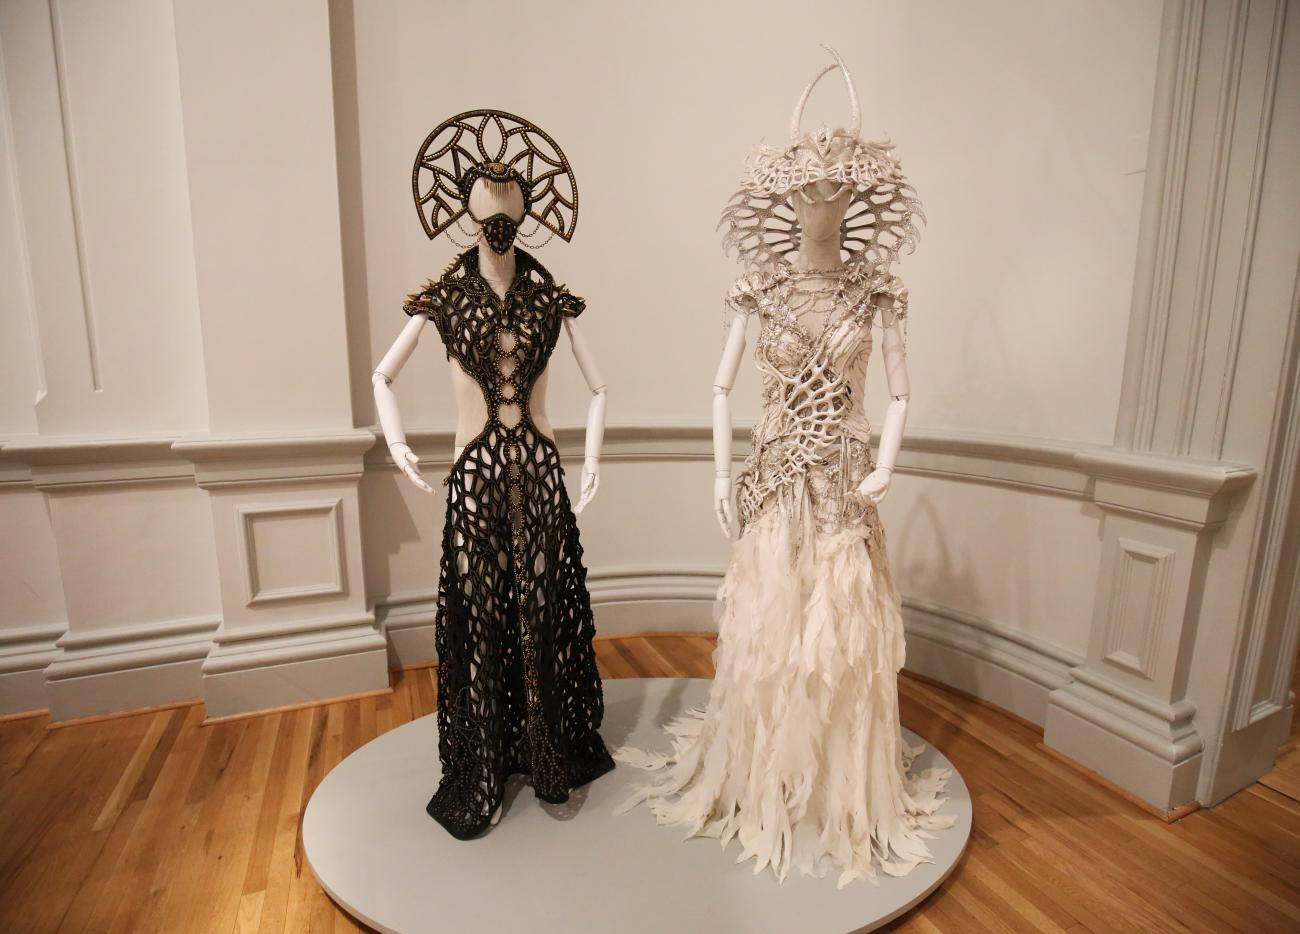 A photograph of two costumes for Burning Man at the Renwick Gallery.